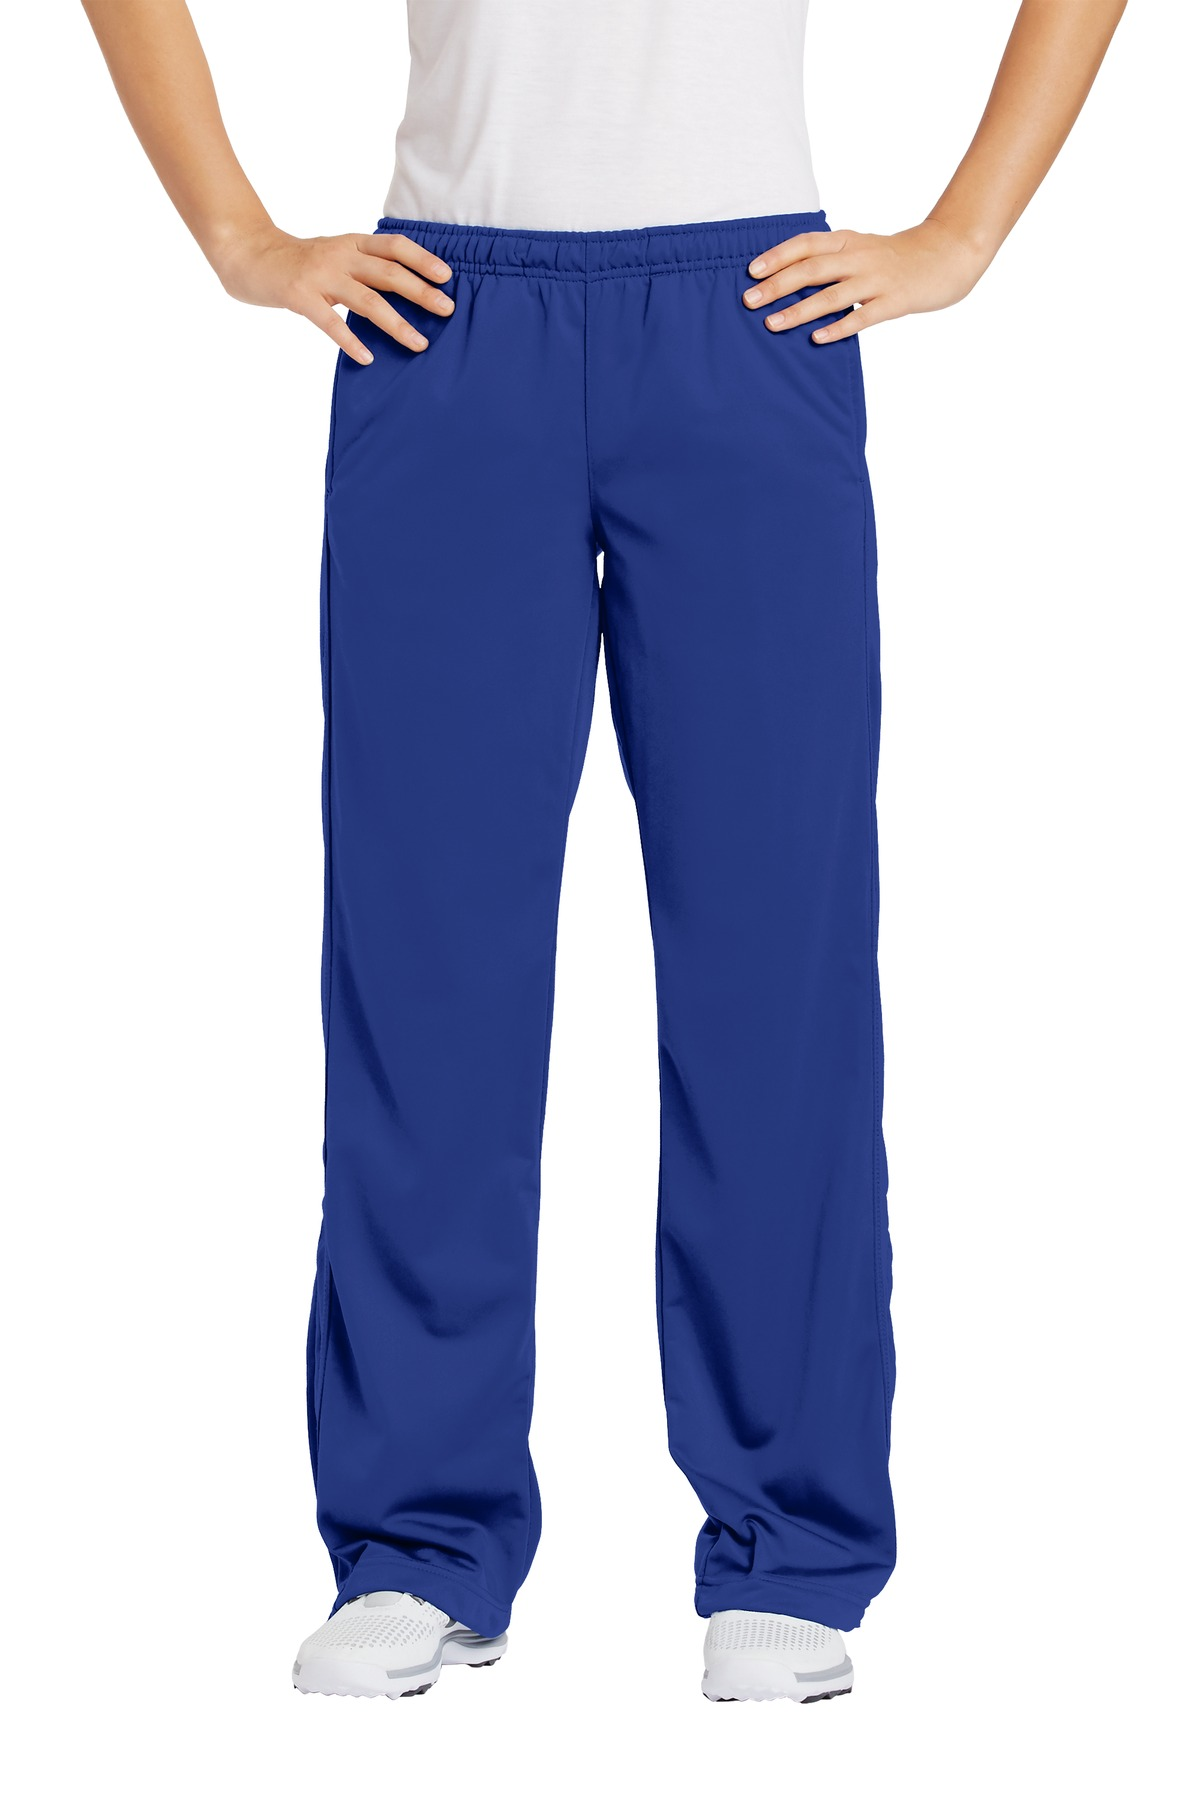 Sport-Tek ®  Ladies Tricot  Track Pant. LPST91 - True Royal